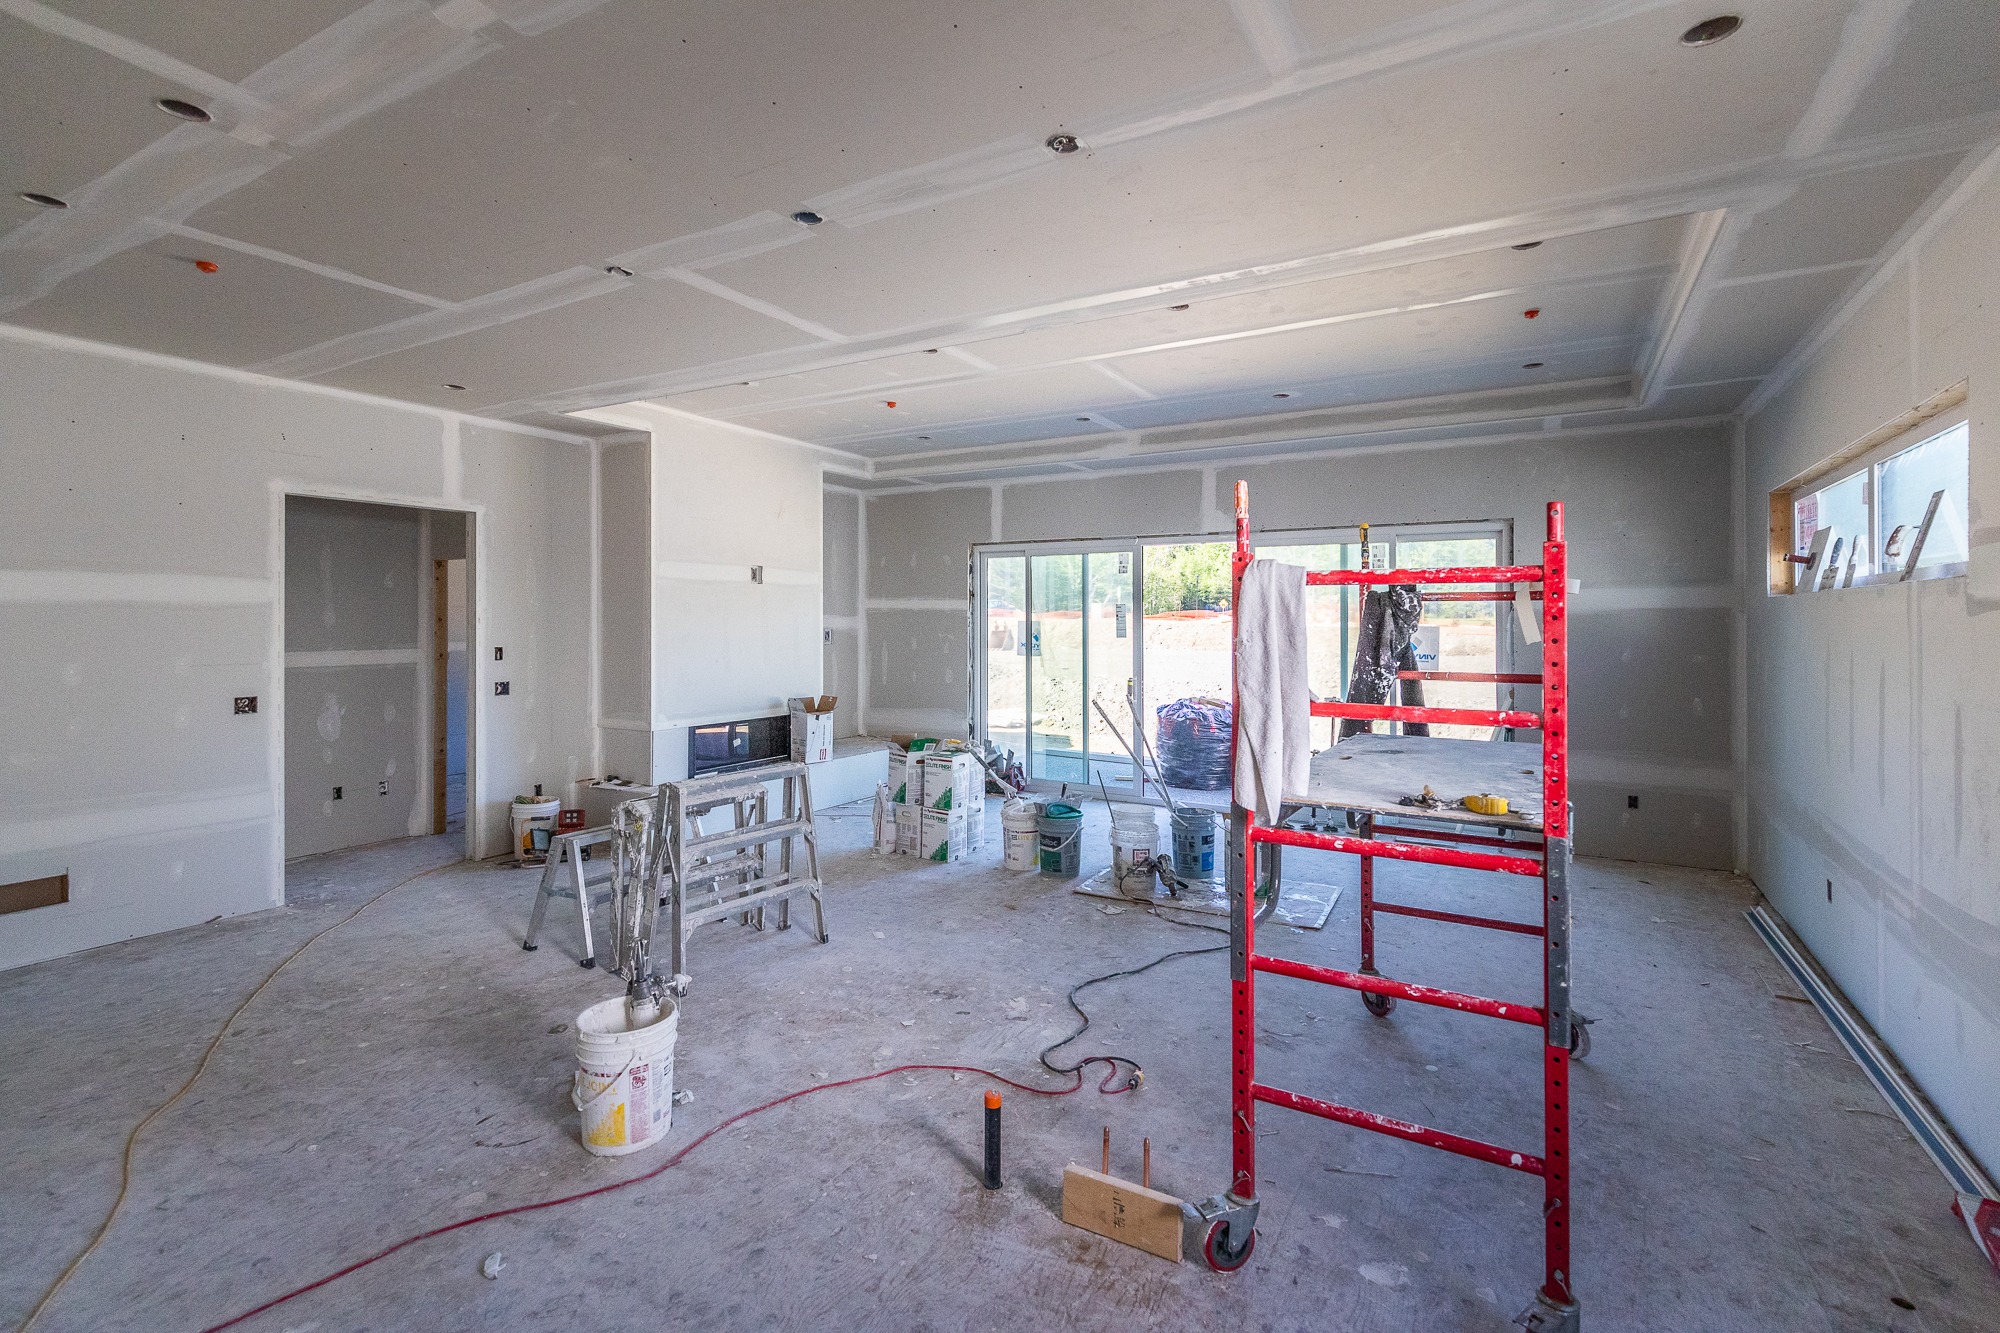 Claymore_Paired_Drywall_Sml-3.jpg